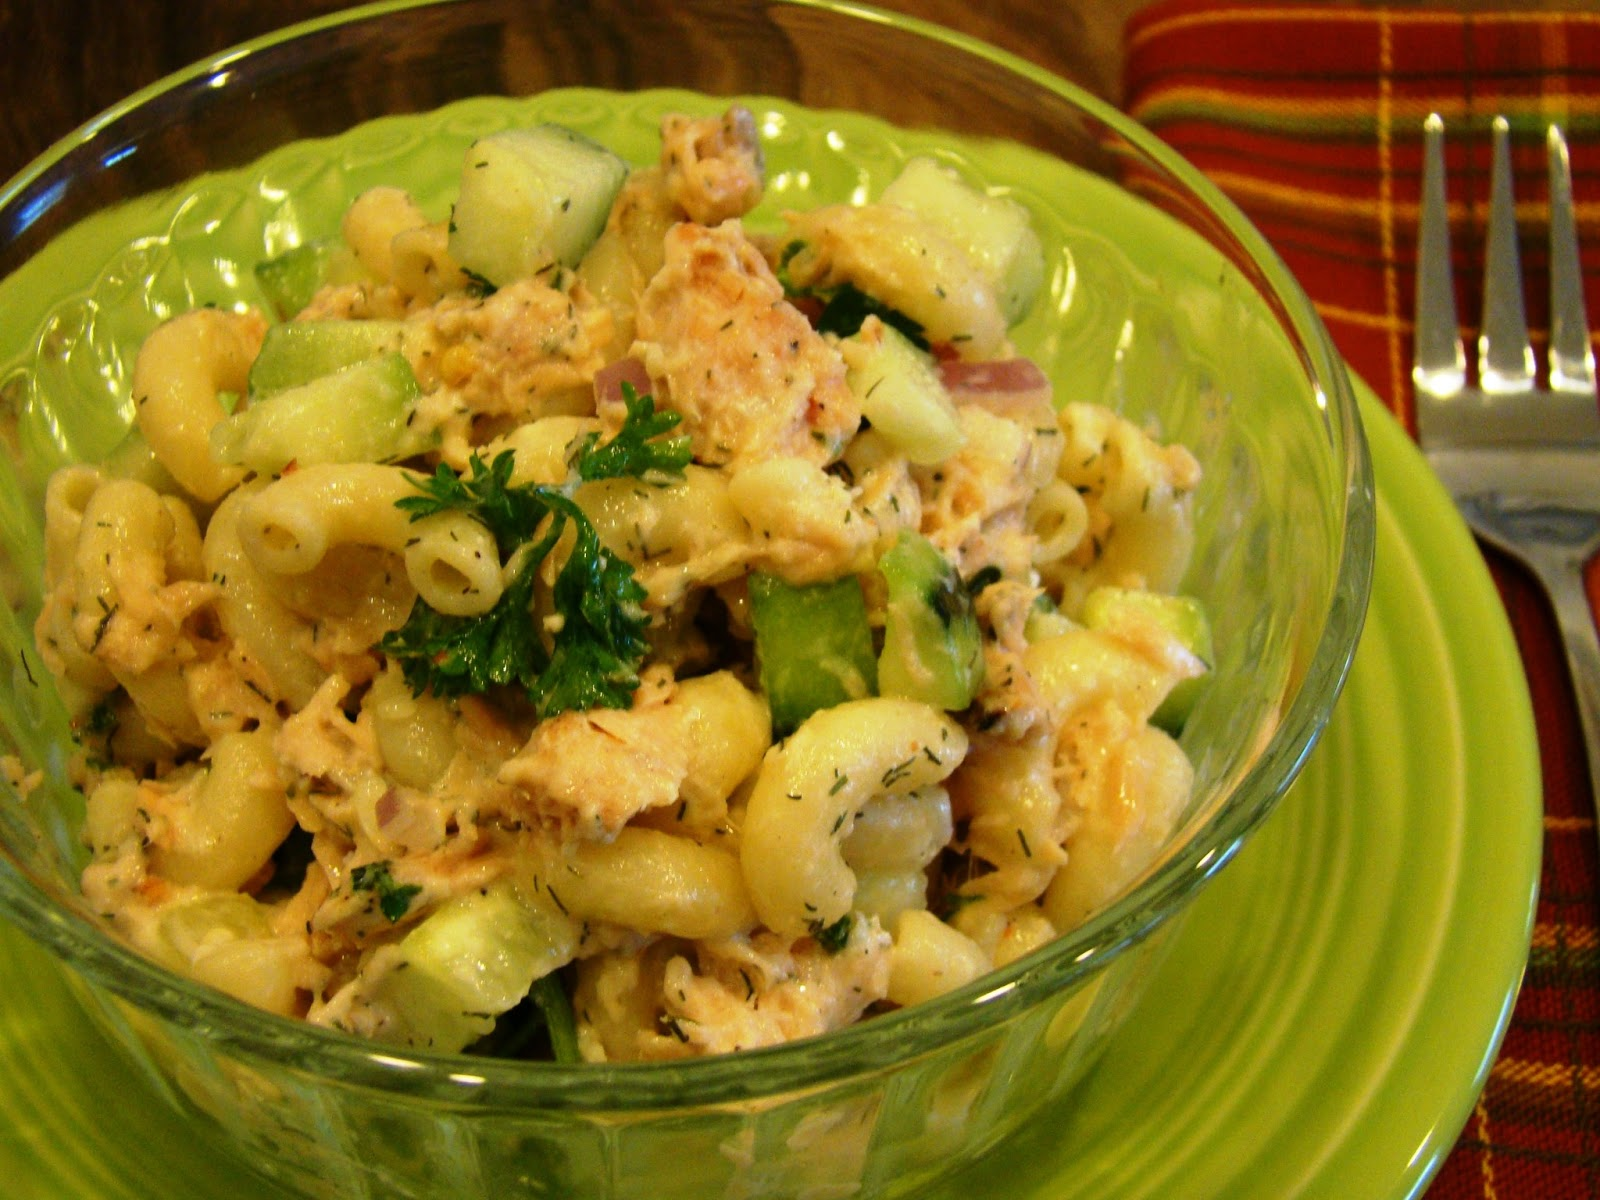 Soup Spice Everything Nice: Salmon Macaroni Salad with Cucumbers